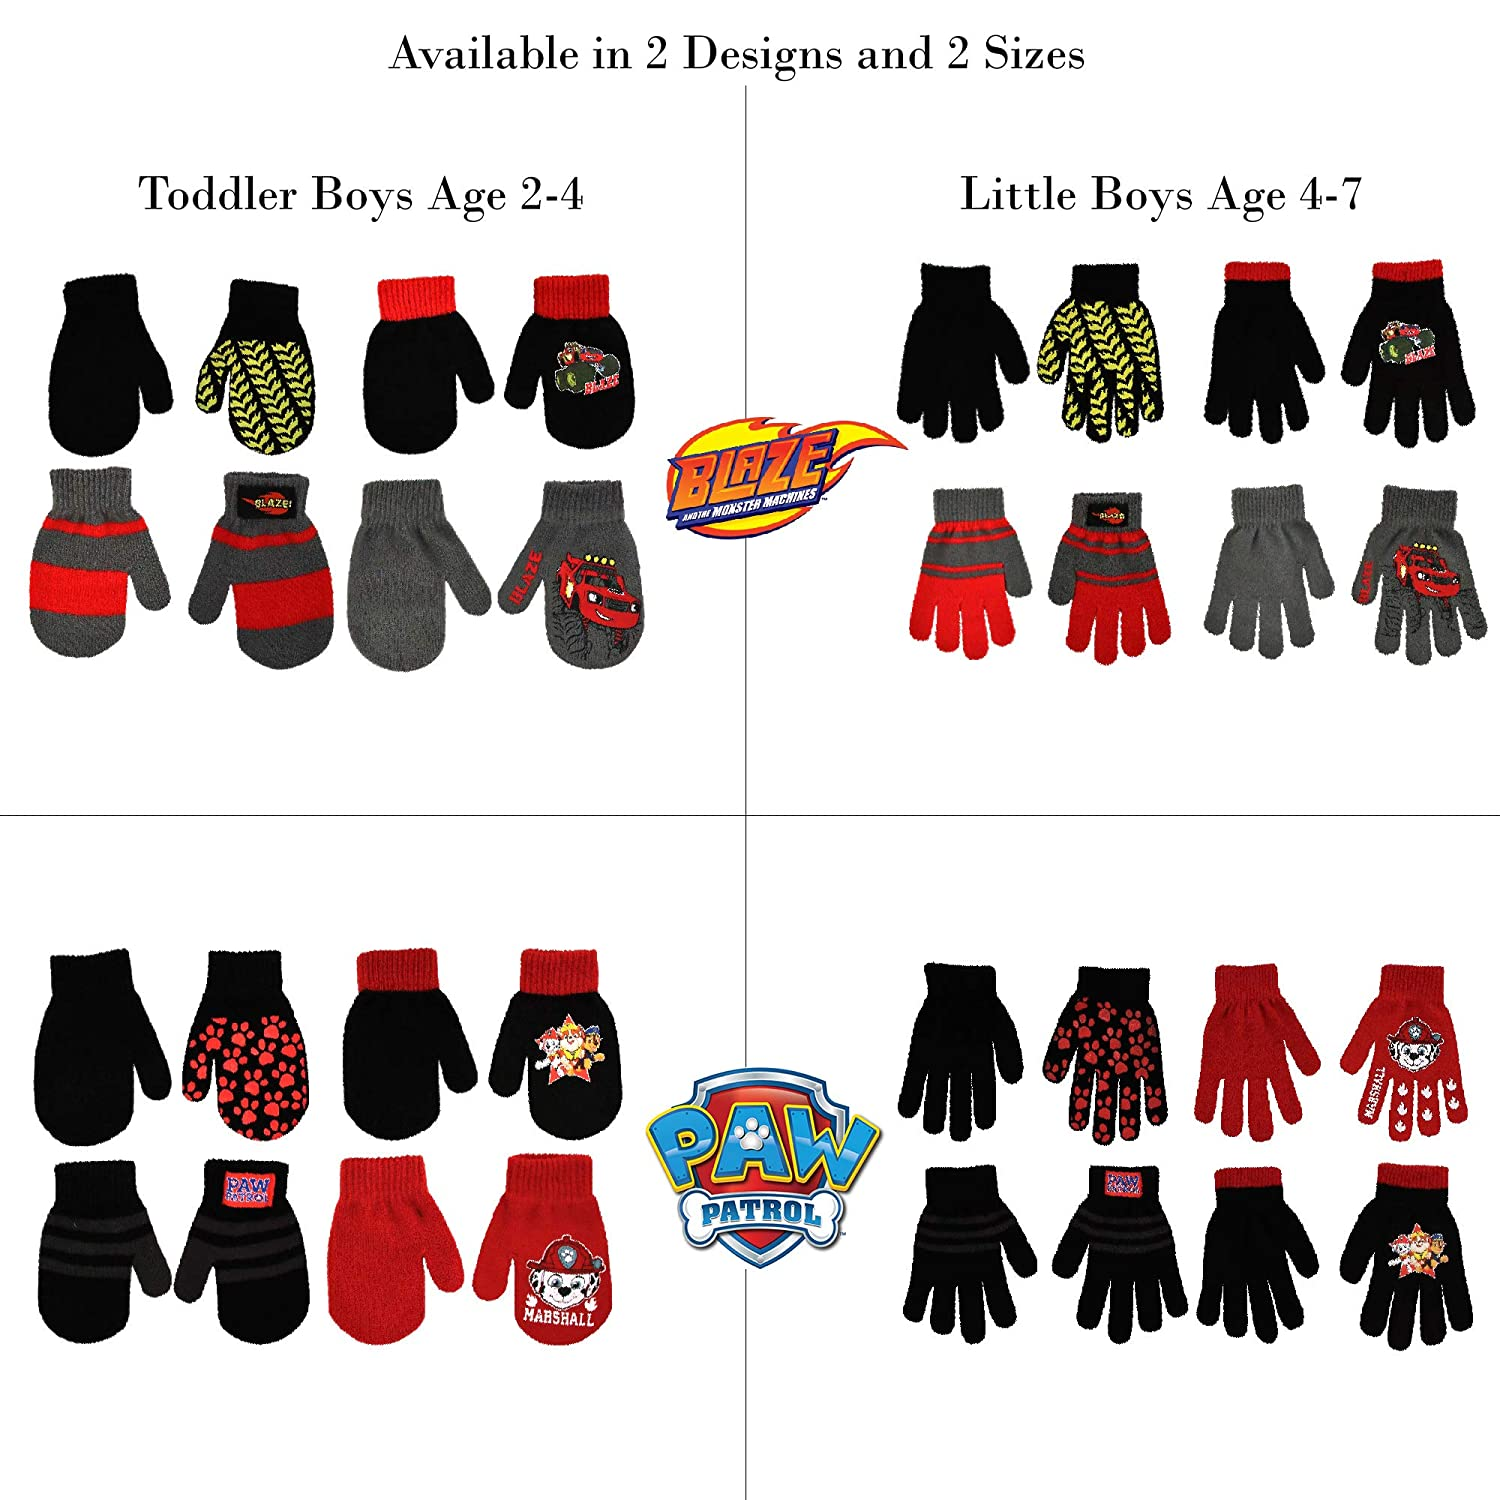 Age 2-4 or 4-7 Little Boys Nickelodeon Assorted 4 Pair Set Mittens or Gloves